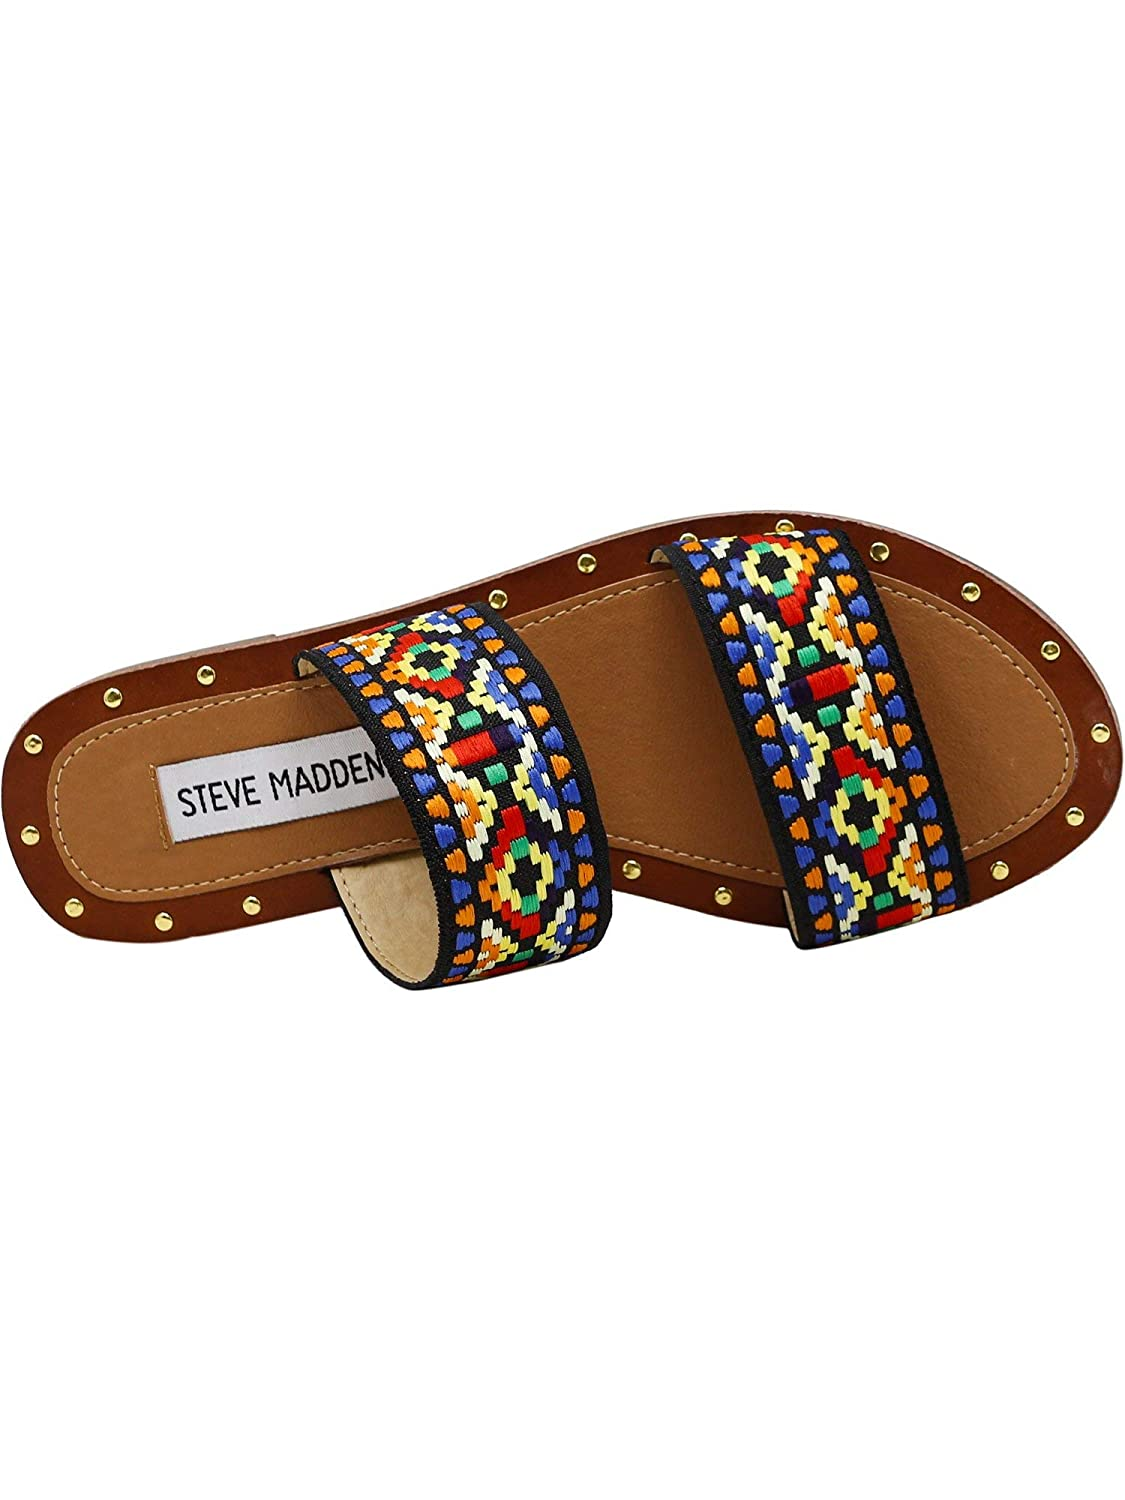 0988b53159a Steve Madden Women s Marcia Tribal Double Strap Flat Sandals Multi 11 B(M)  US  Buy Online at Low Prices in India - Amazon.in